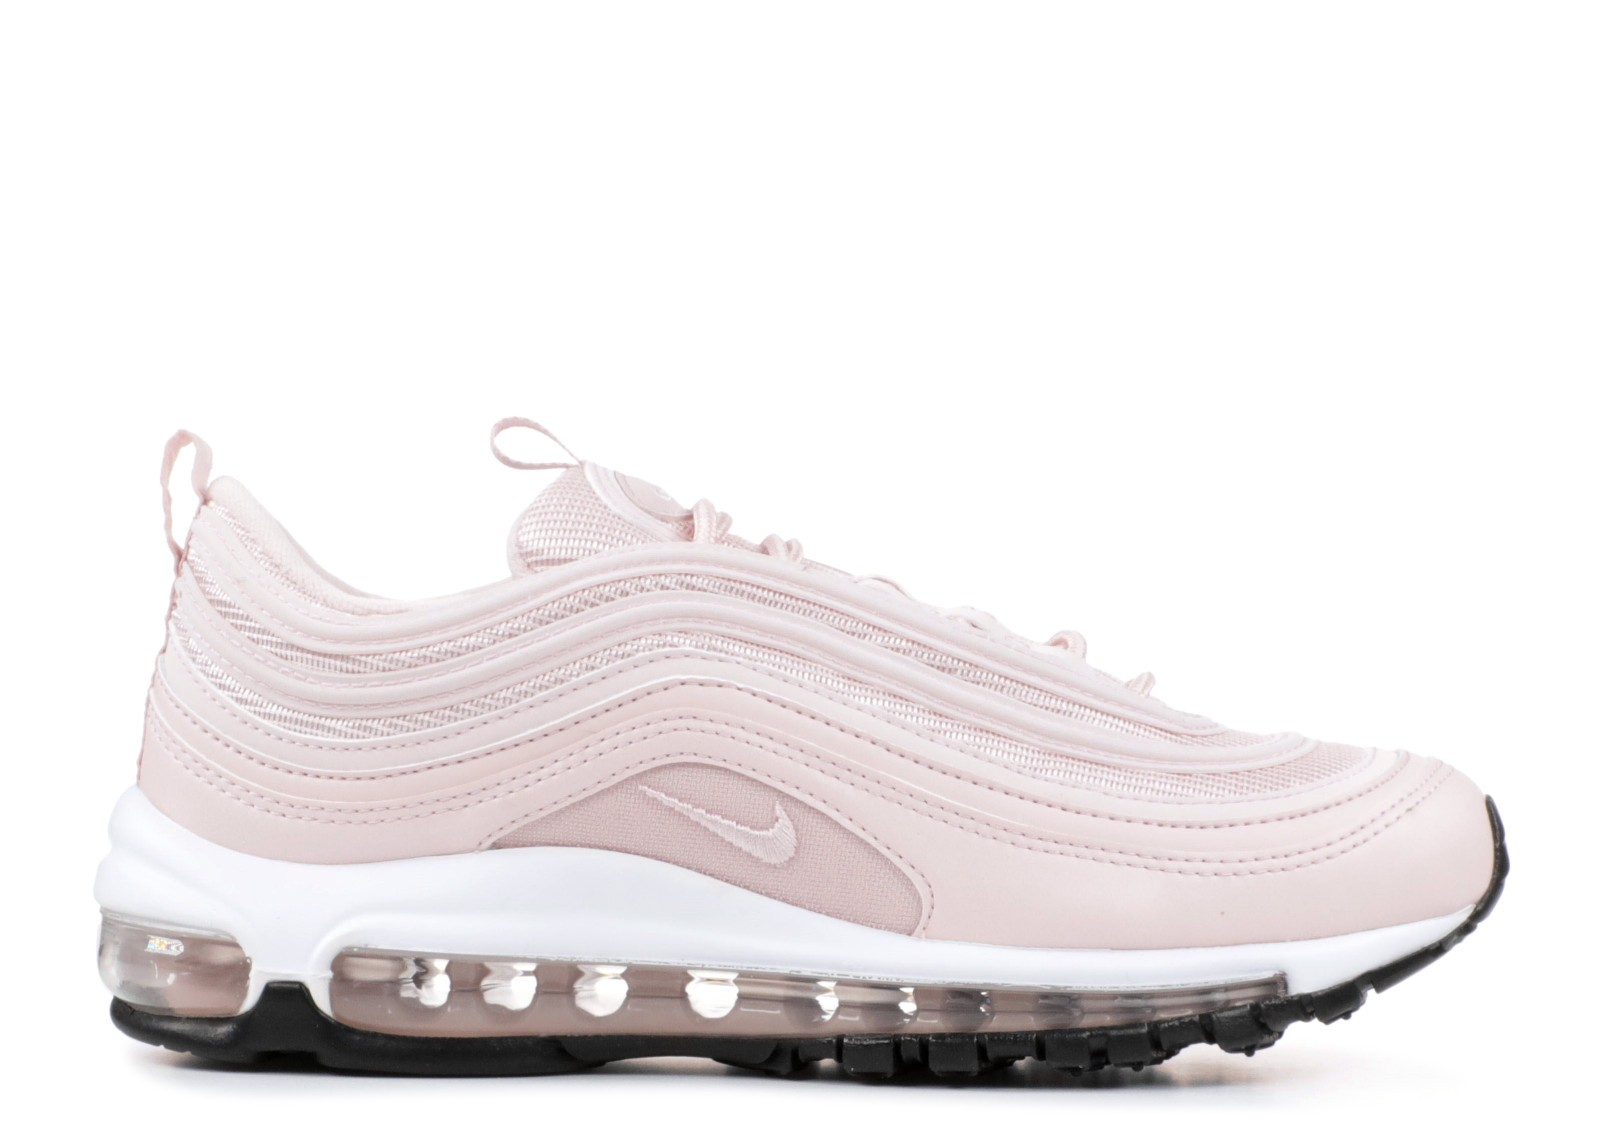 official photos 1d1d0 8216c nike air max 97 921733 600 rosas